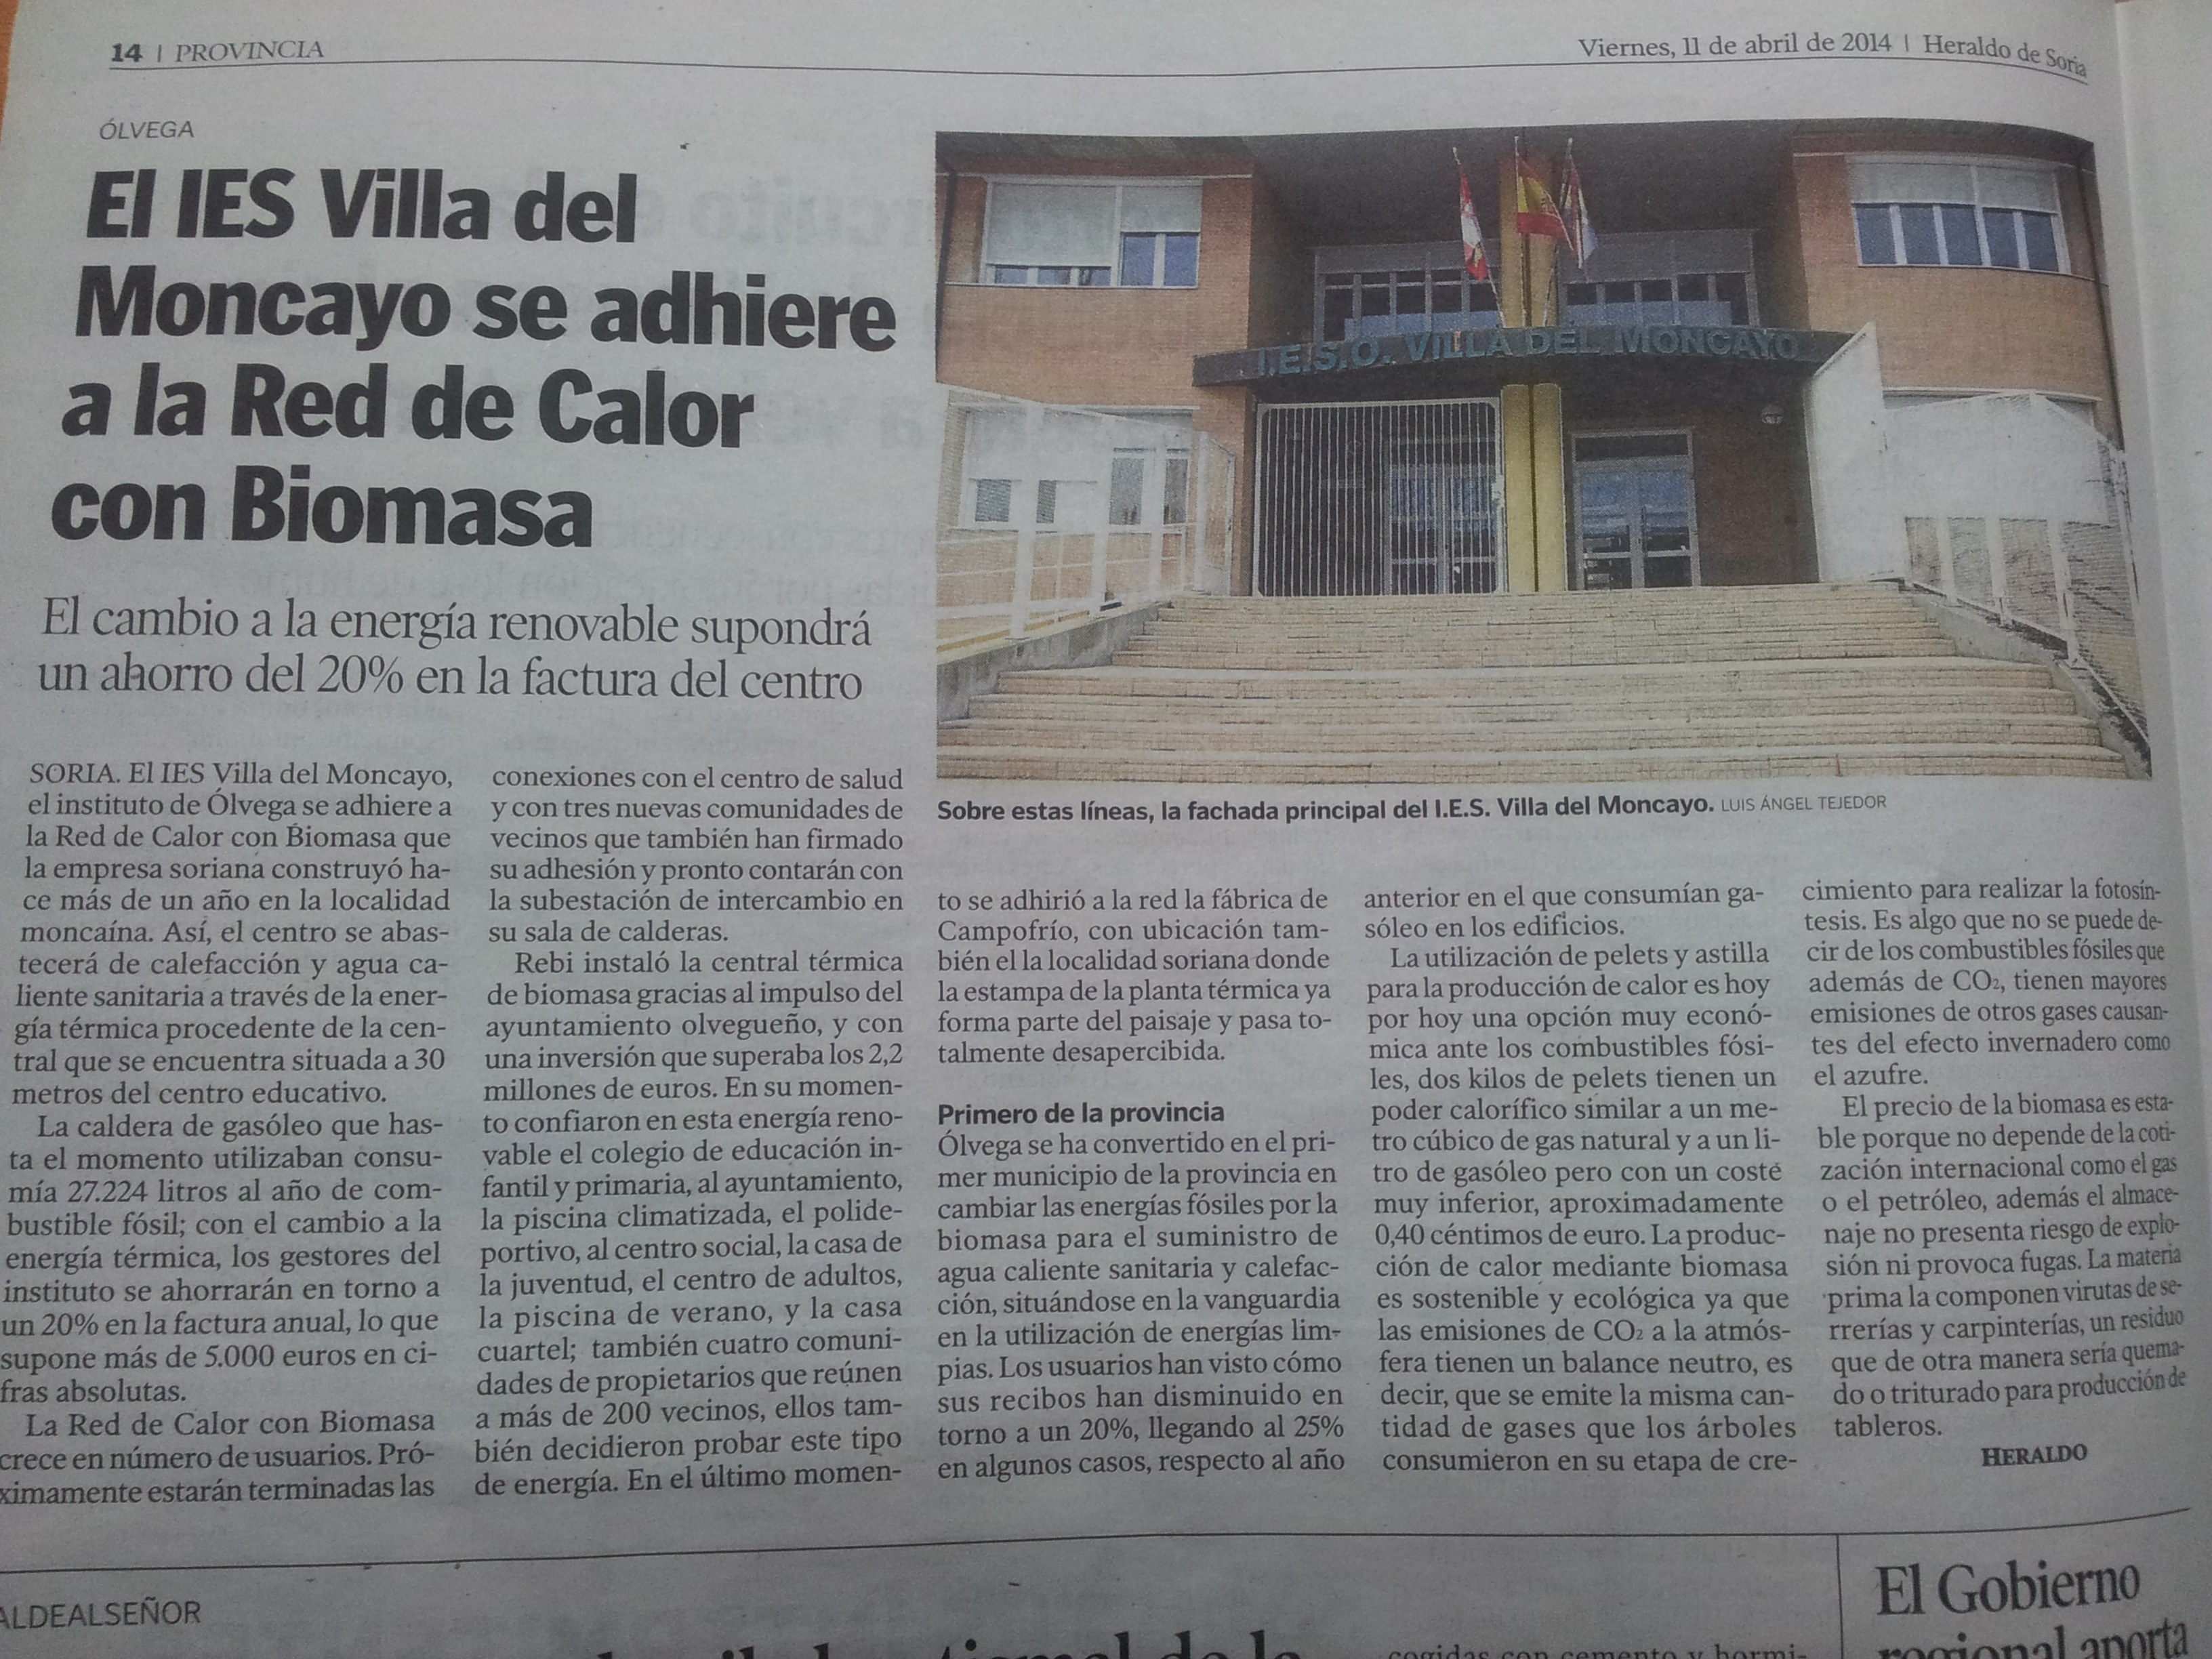 Noticia Heraldo de Soria, 11 de abril de 2014.